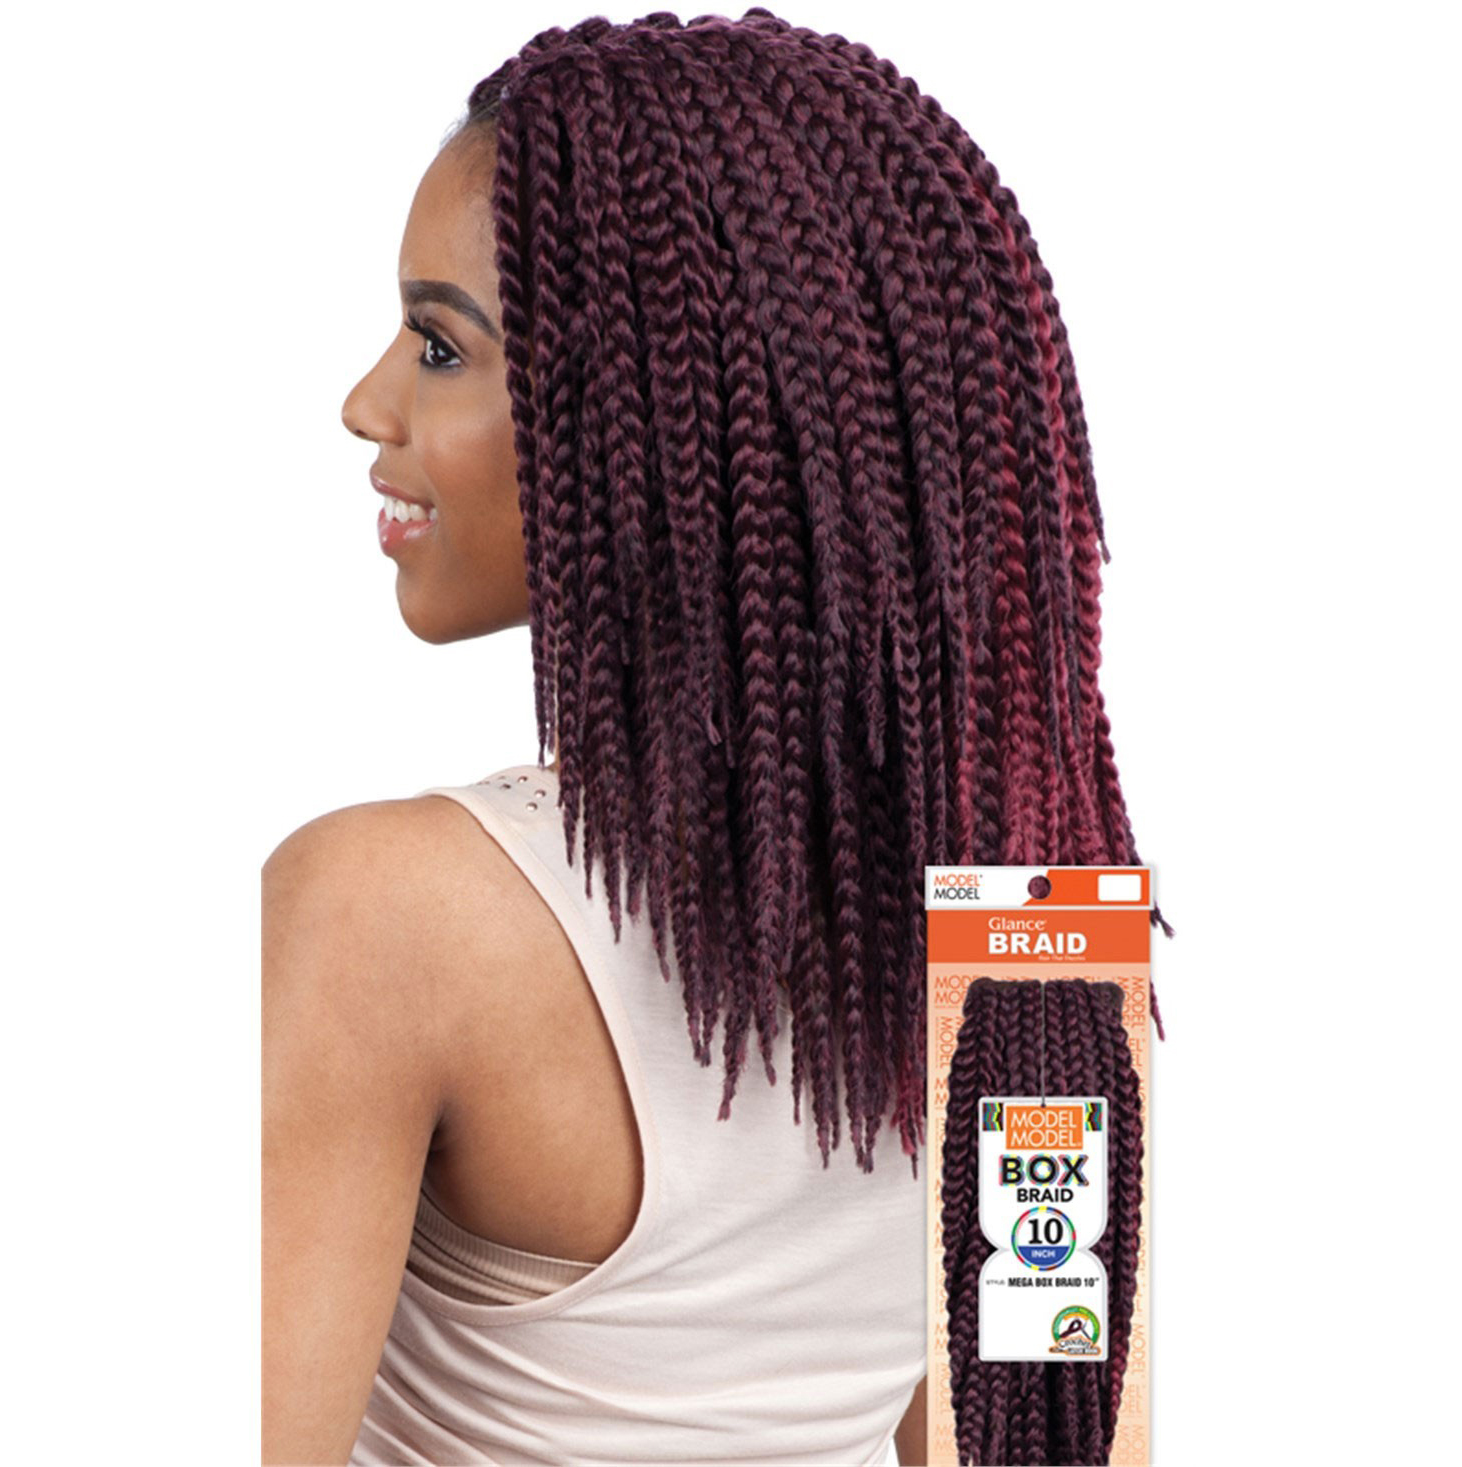 Crochet Box Braids Model Model : MEGA-BOX-BRAID-10-034-MODEL-MODEL-GLANCE-SYNTHETIC-CROCHET-BRAIDING ...